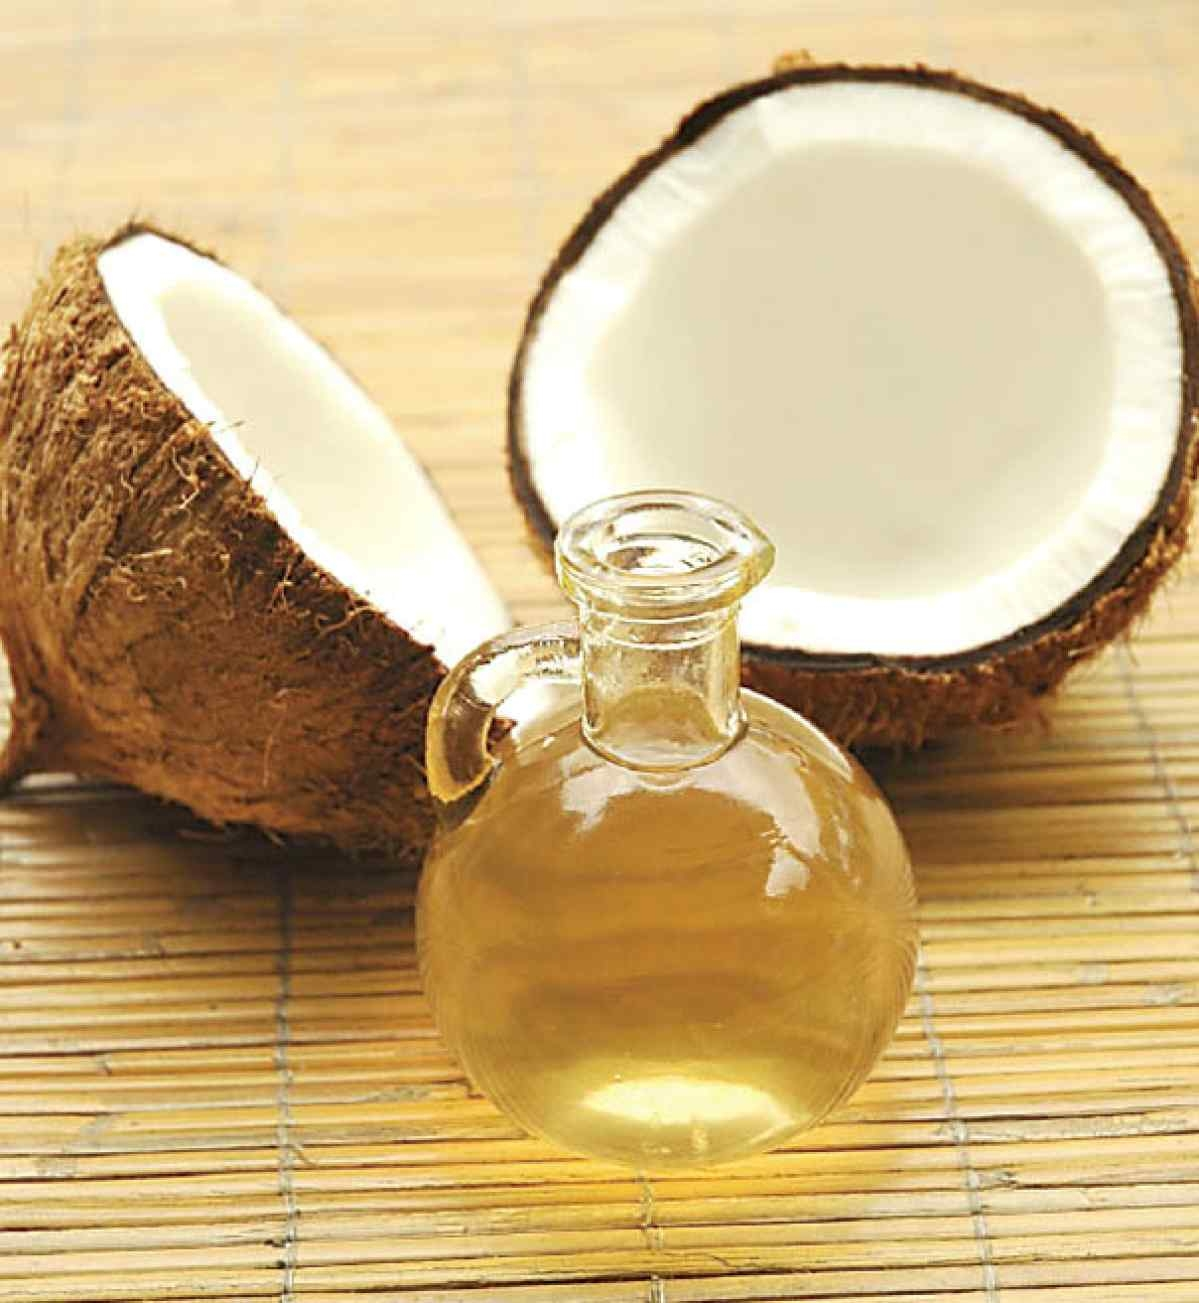 Coconut Is 'Pure Poison' Claim: Experts Weight the Facts